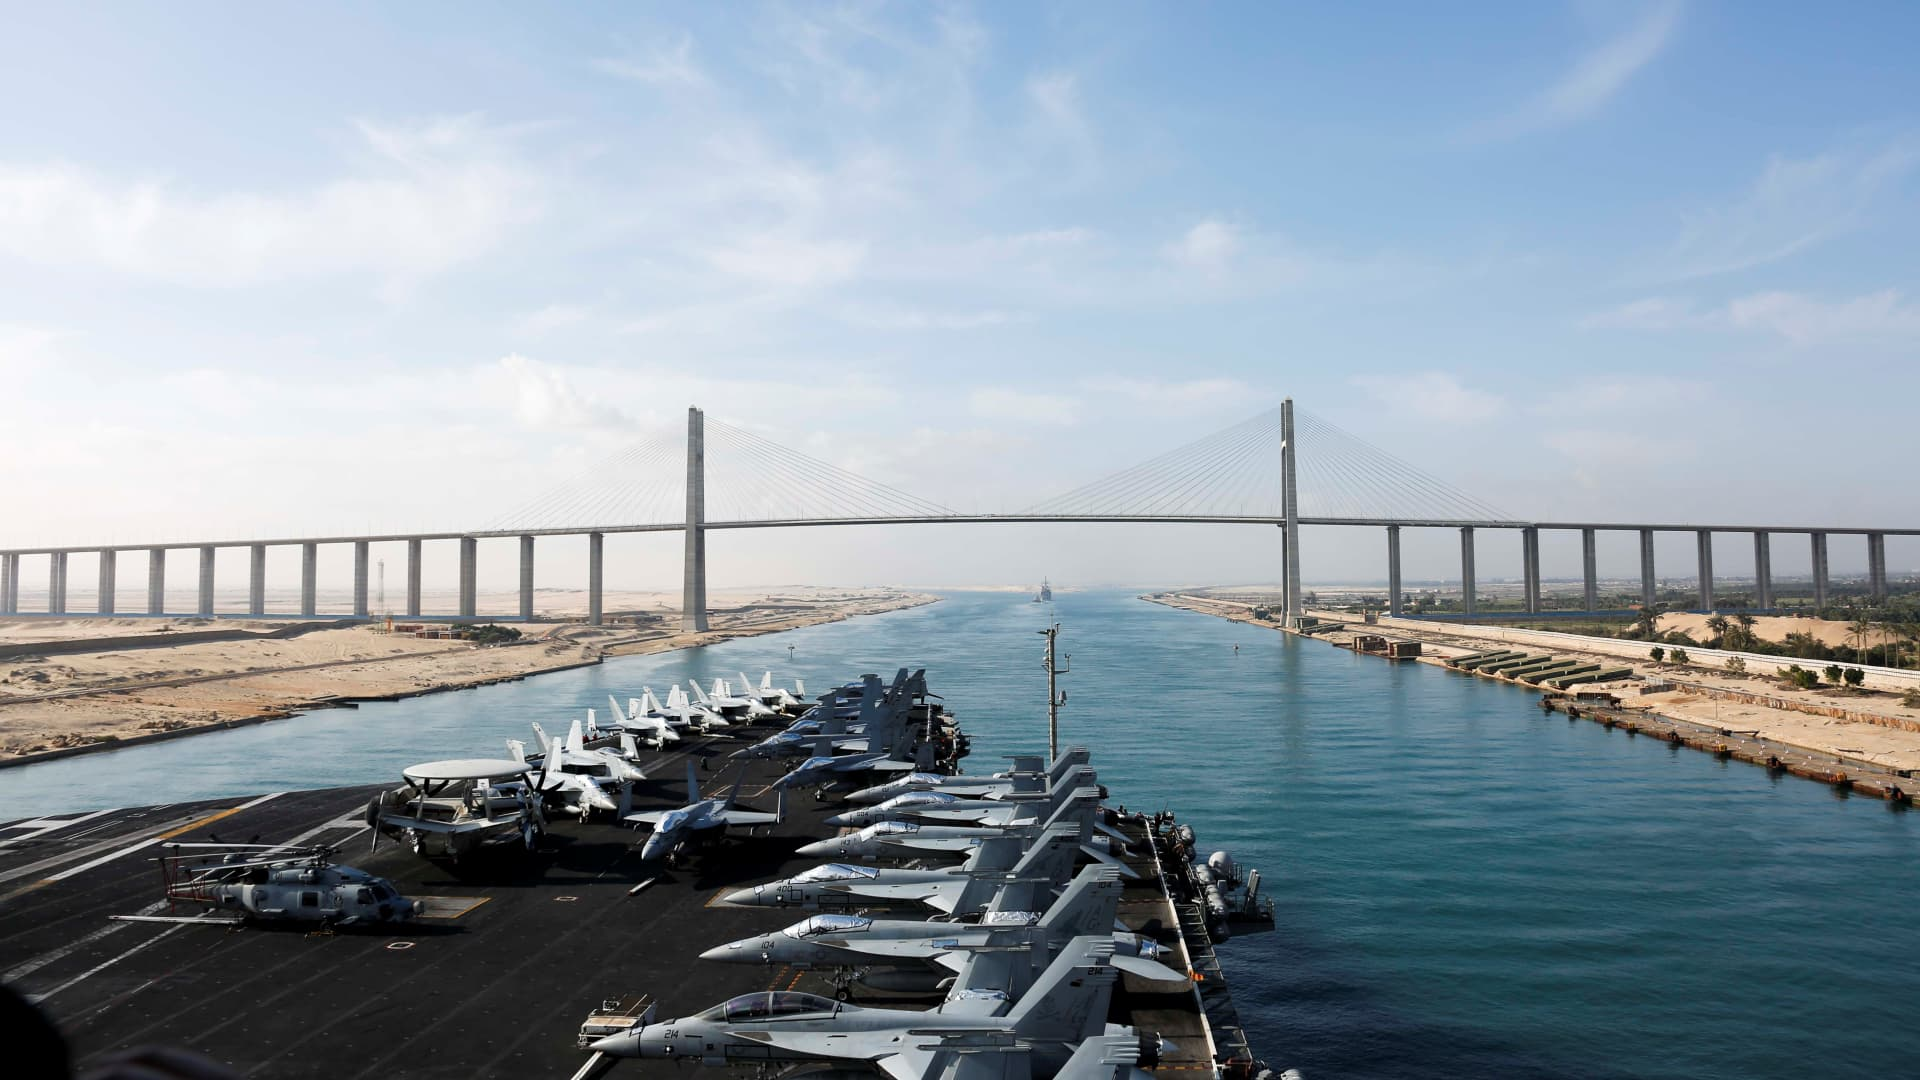 The Nimitz-class aircraft carrier USS Abraham Lincoln approaches the Mubarak Peace Bridge as it transits the Suez Canal in Egypt, May 9, 2019. Picture taken May 9, 2019.